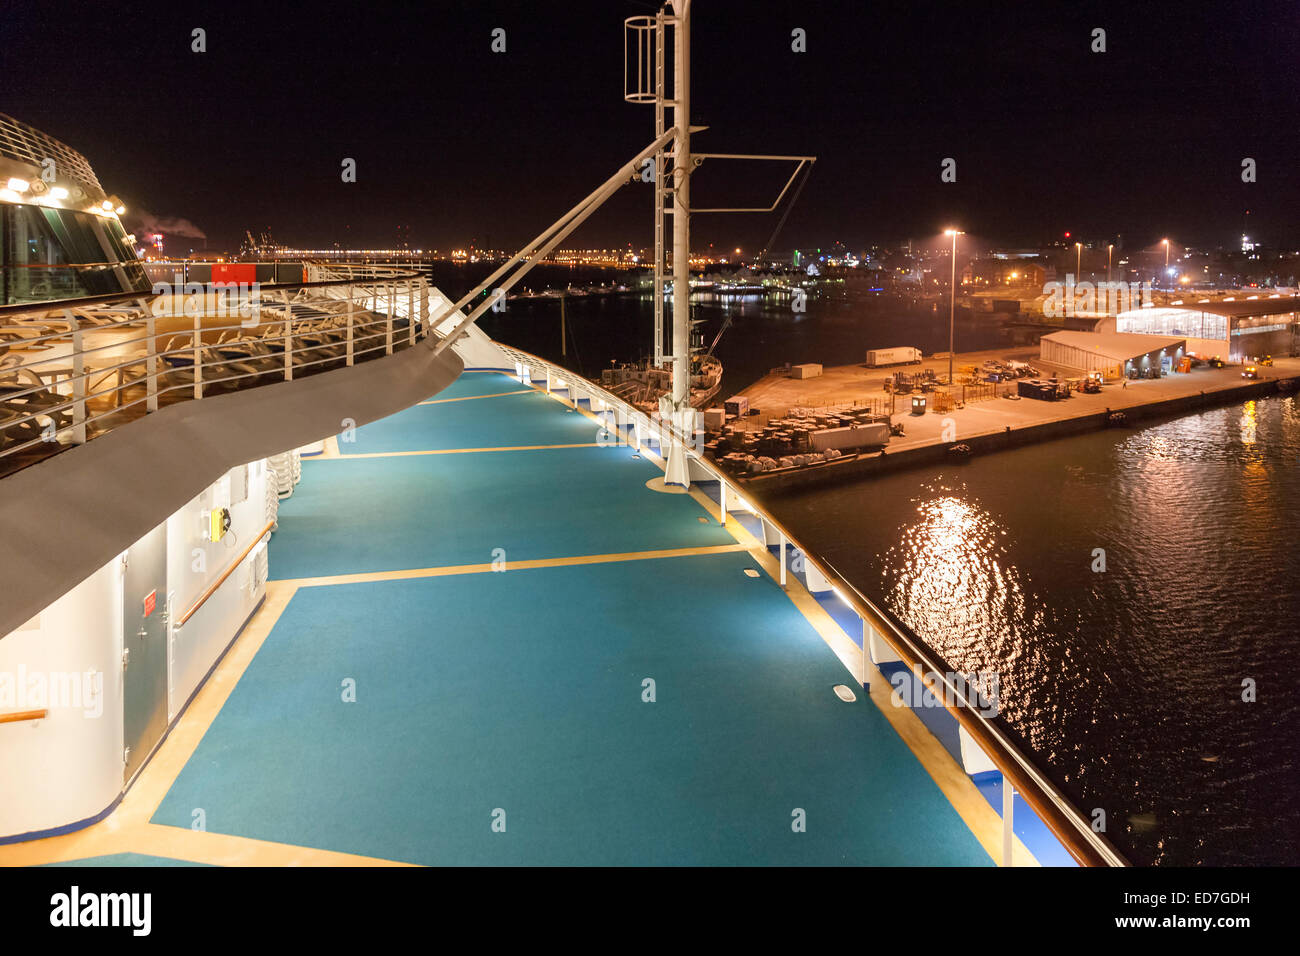 Southampton Docks as seen from the deck of a  cruise ship. - Stock Image